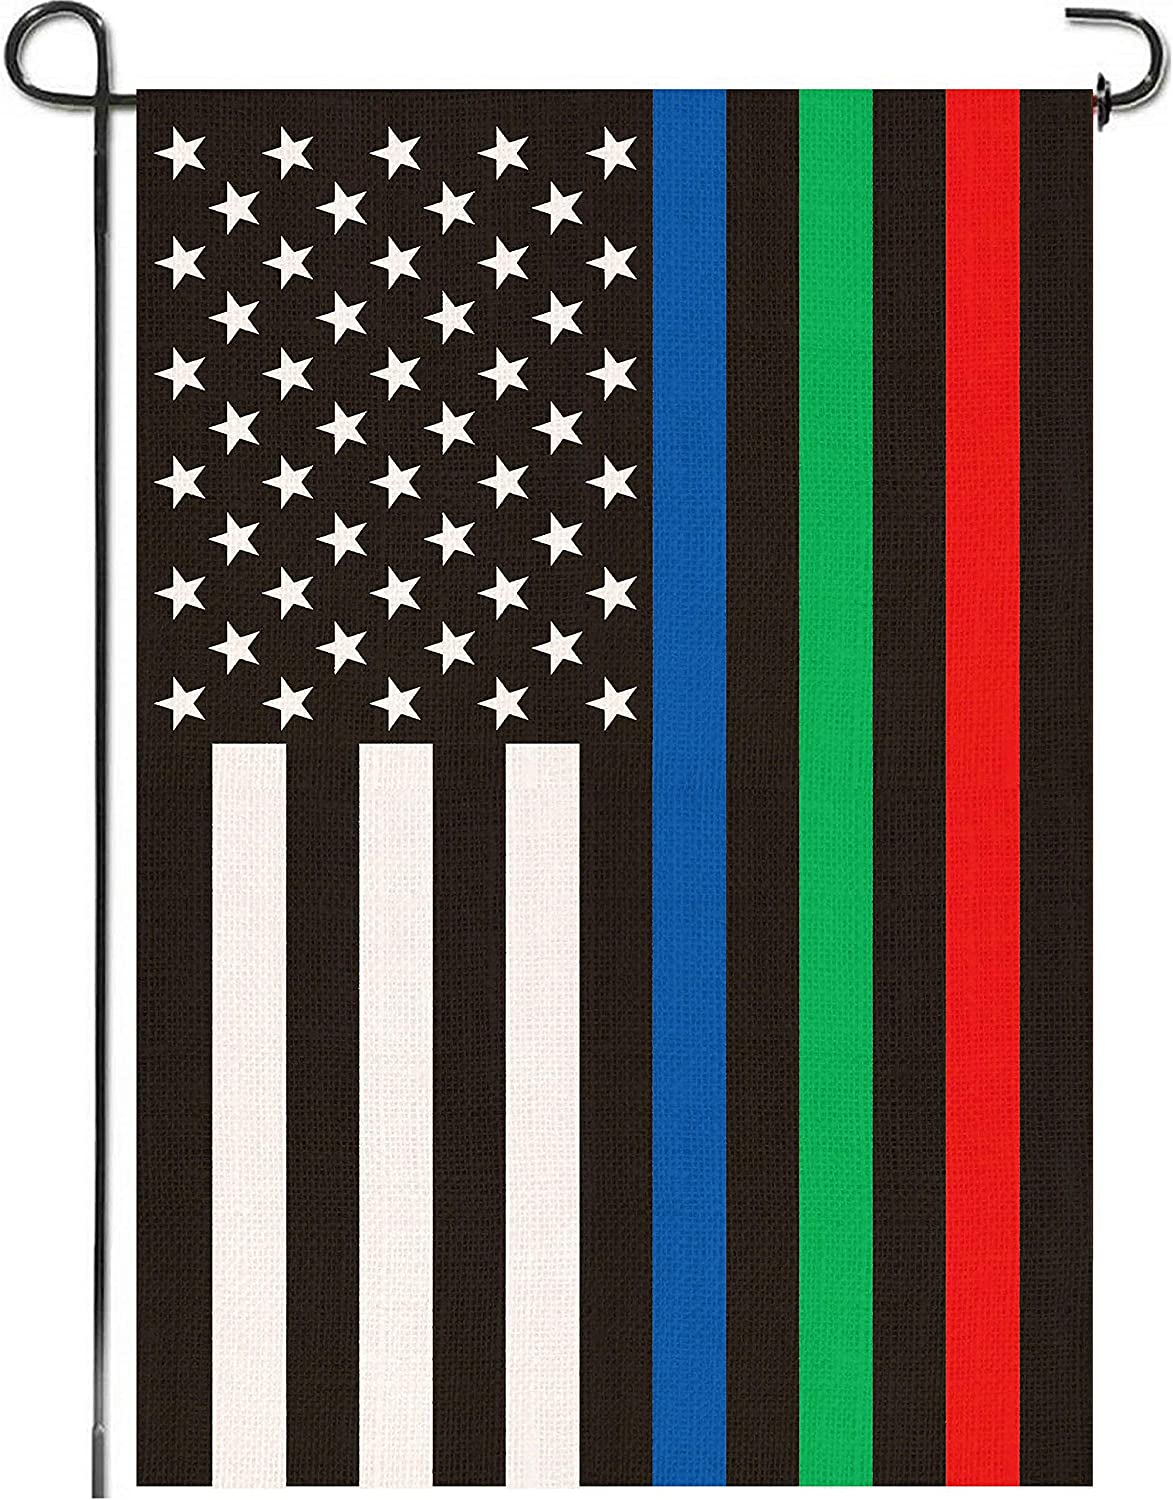 Mogarden American Thin Blue Green Red Line Garden Flag, Honoring Police Military and Firefighters, Thick Weatherproof Burlap USA Yard Flag